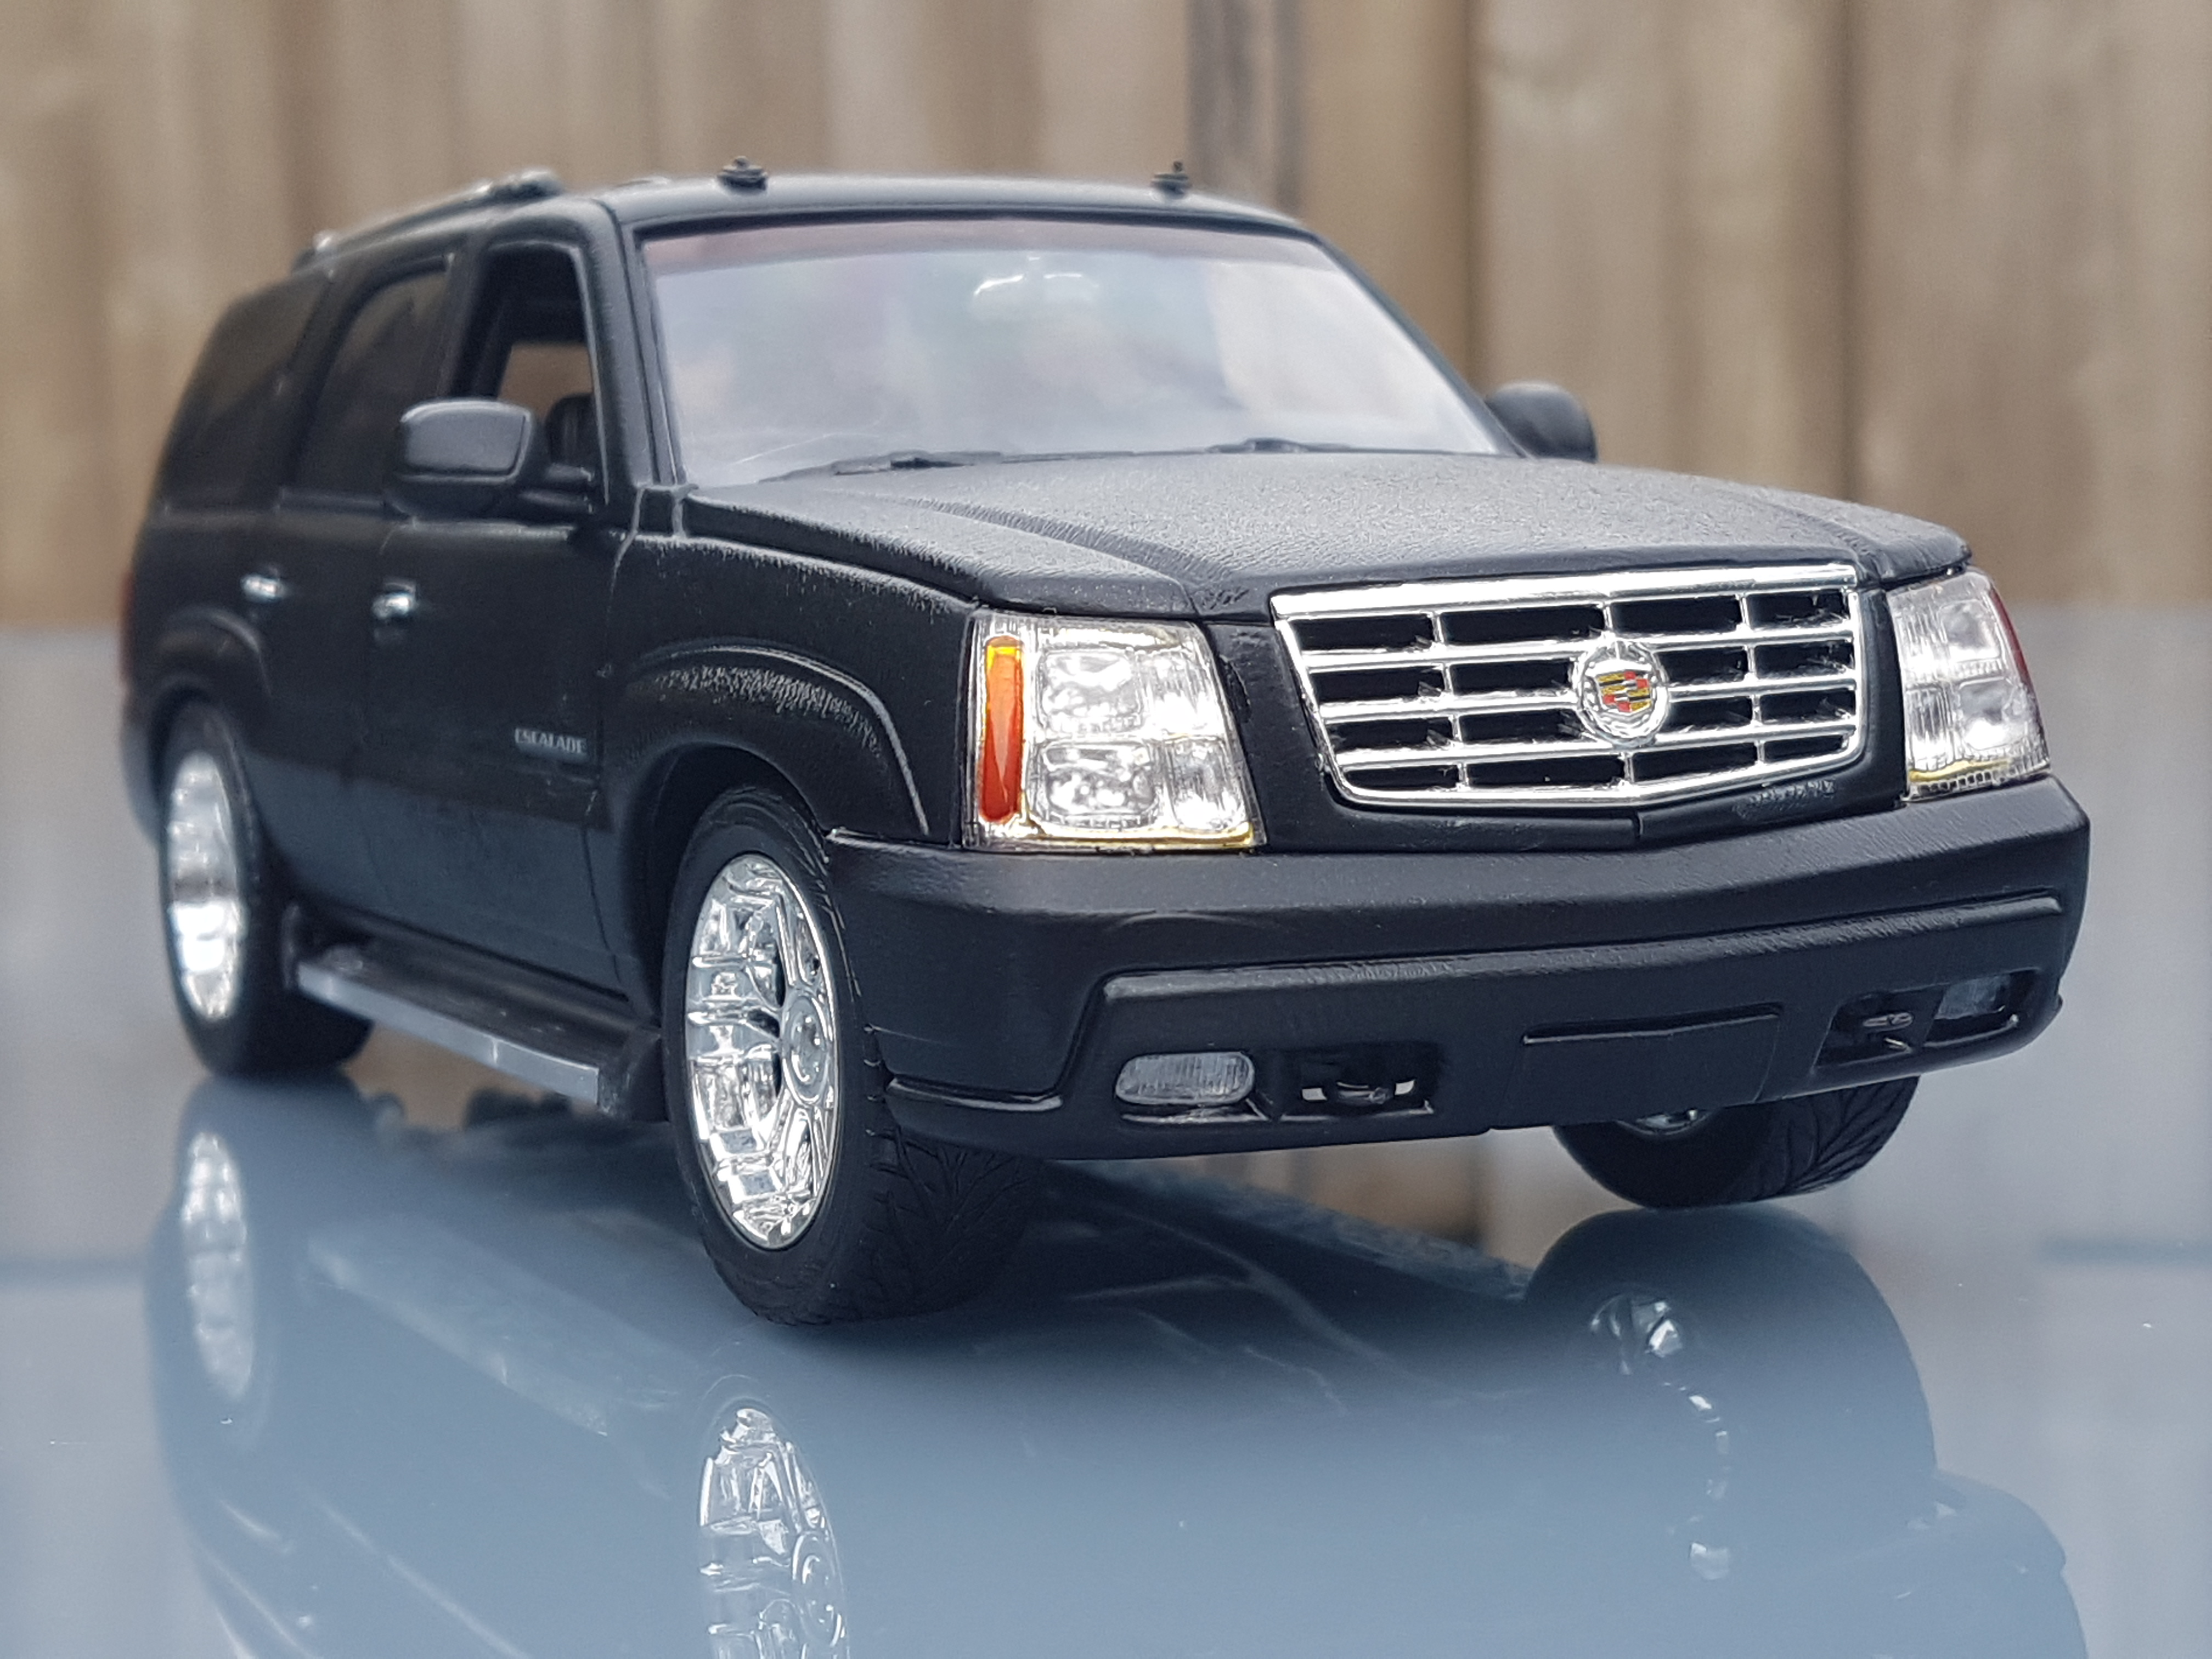 escalade sale rays for kits cadillac revell